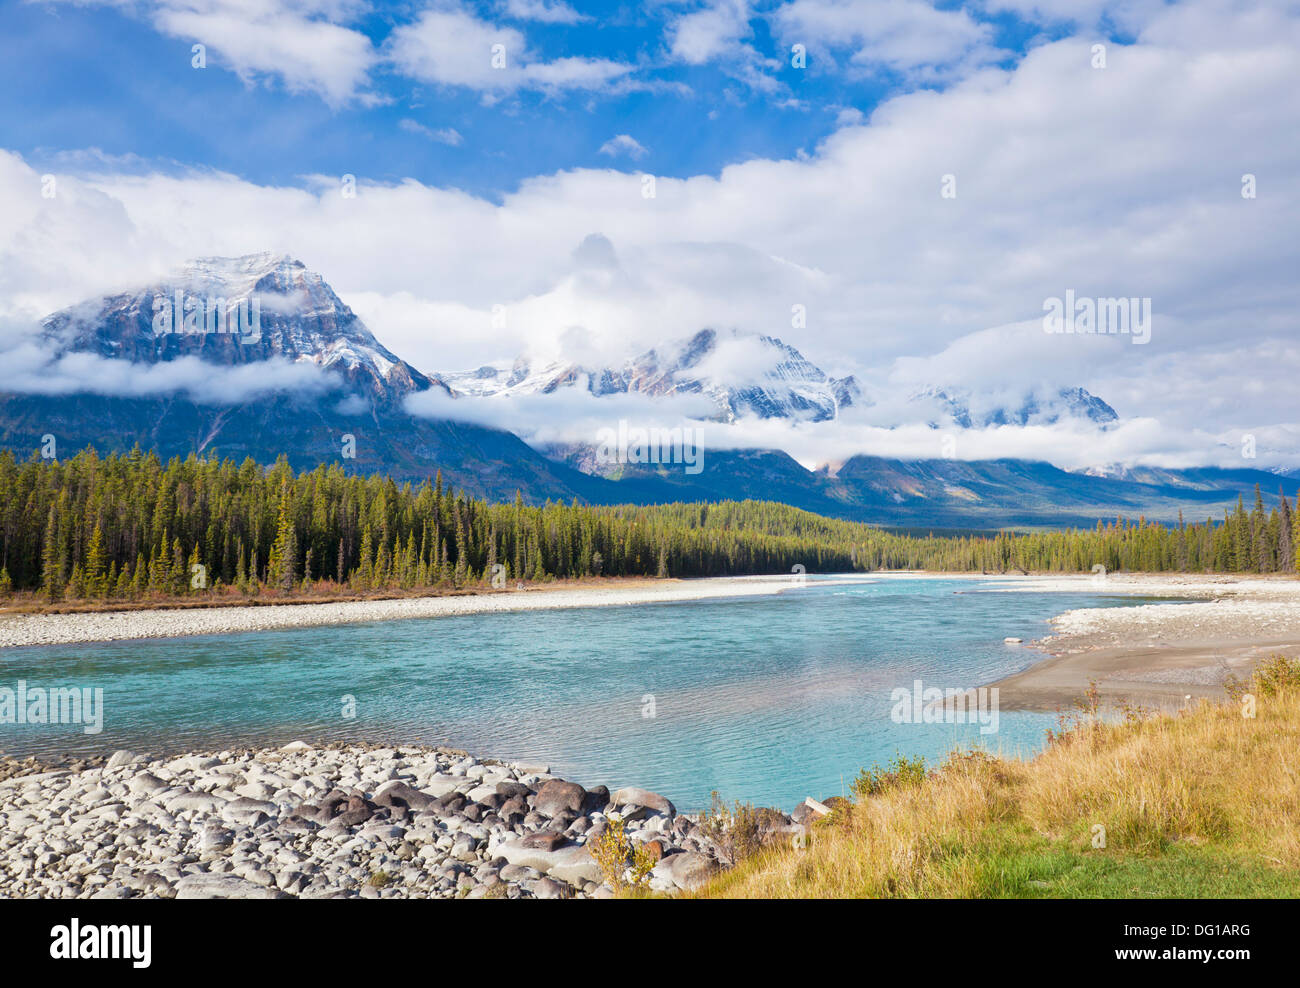 The Athabasca River flowing through Jasper National Park Canadian Rockies Alberta Canada - Stock Image